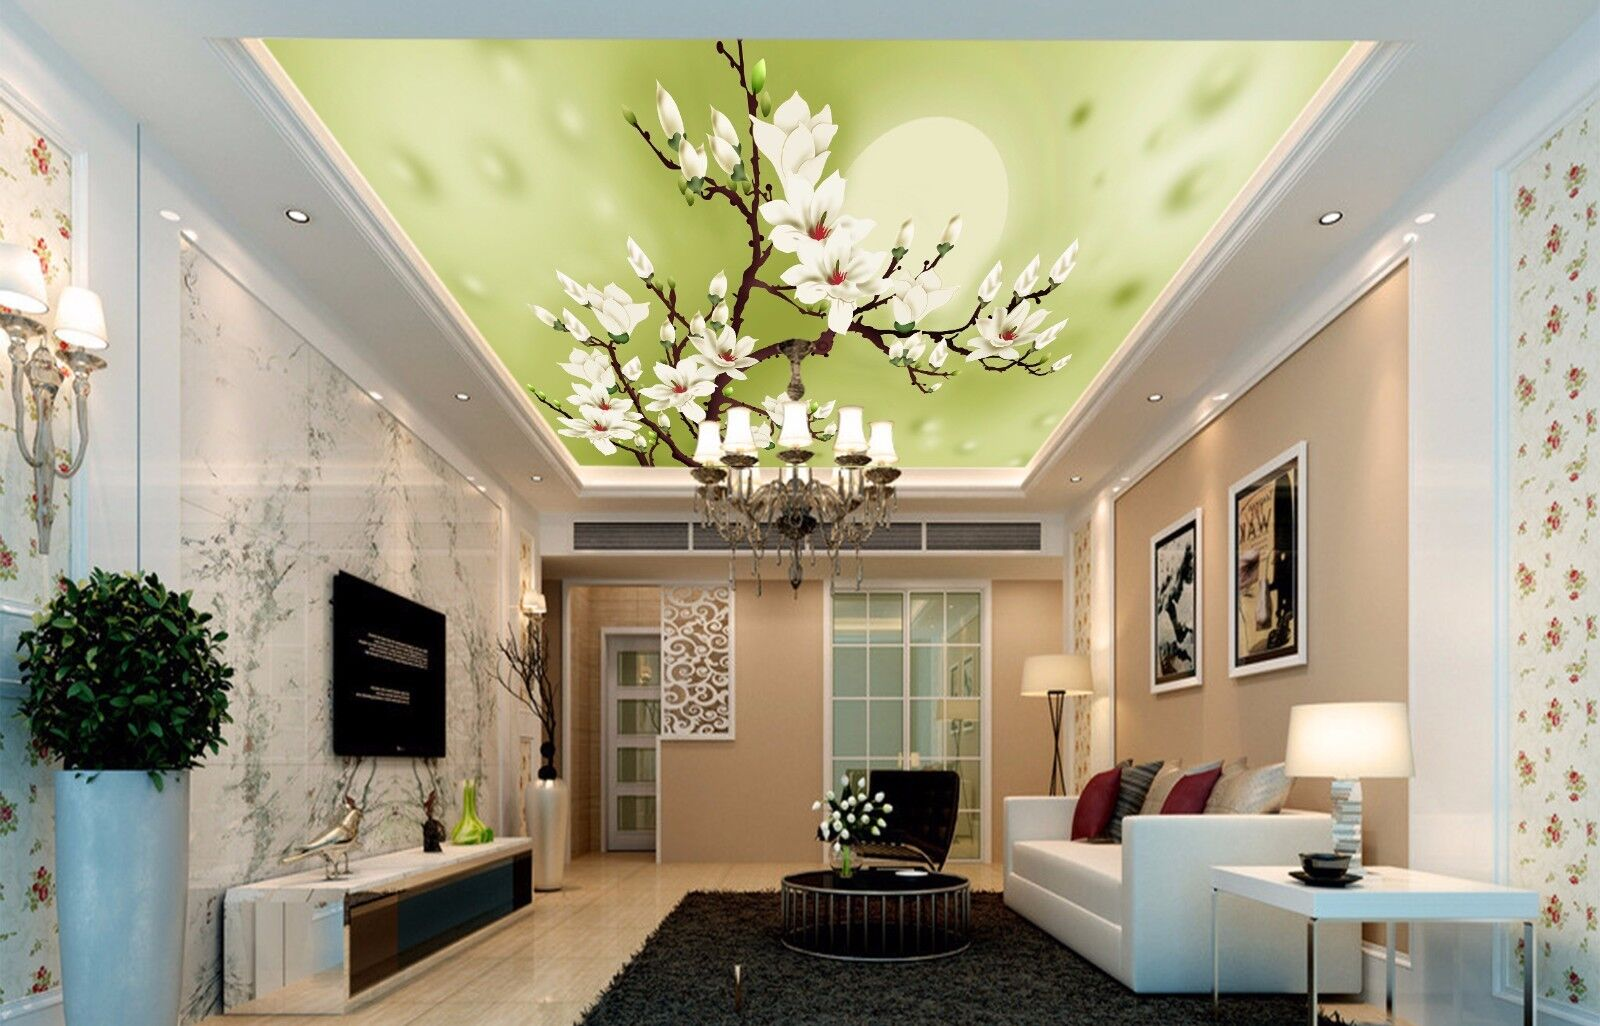 3D Weiß Flower 9 Ceiling WallPaper Murals Wall Print Decal Deco AJ WALLPAPER GB